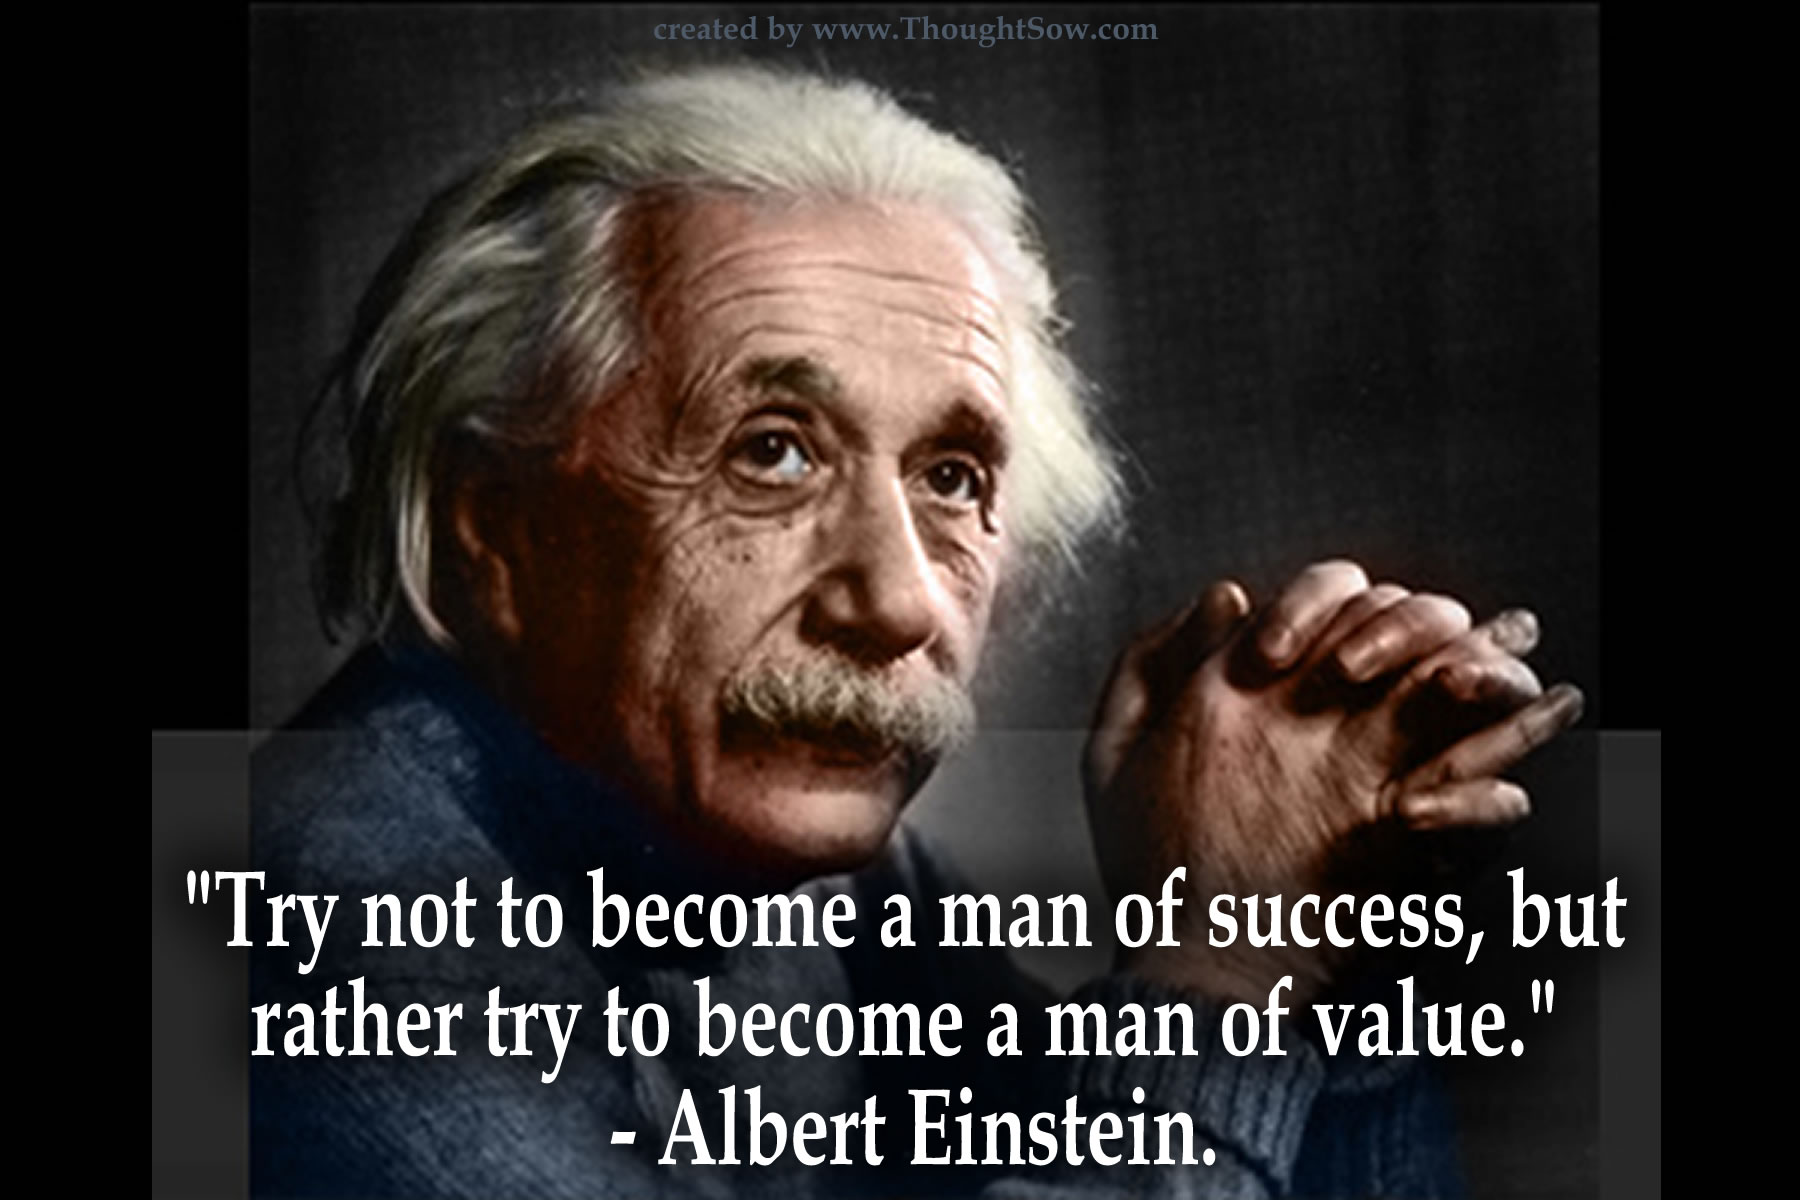 albert einstein catalystinspiration alb einst man of value